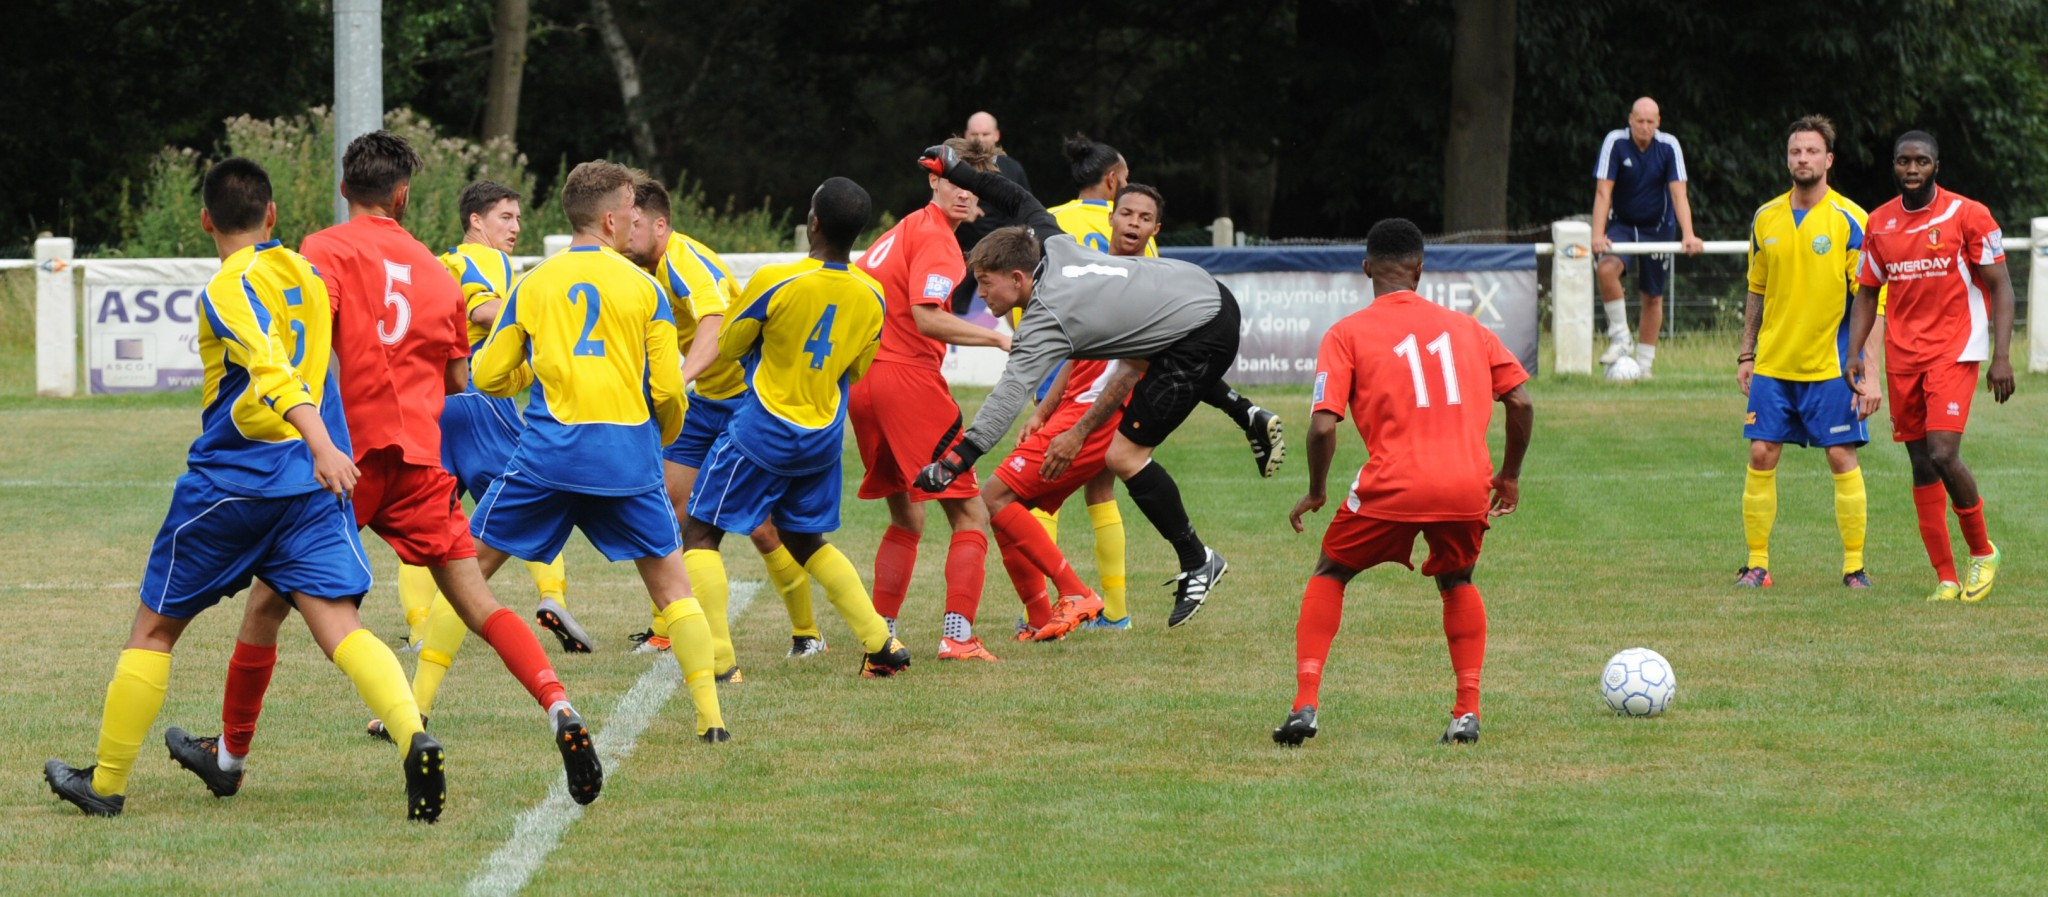 Images from Ascot United's friendly on Saturday